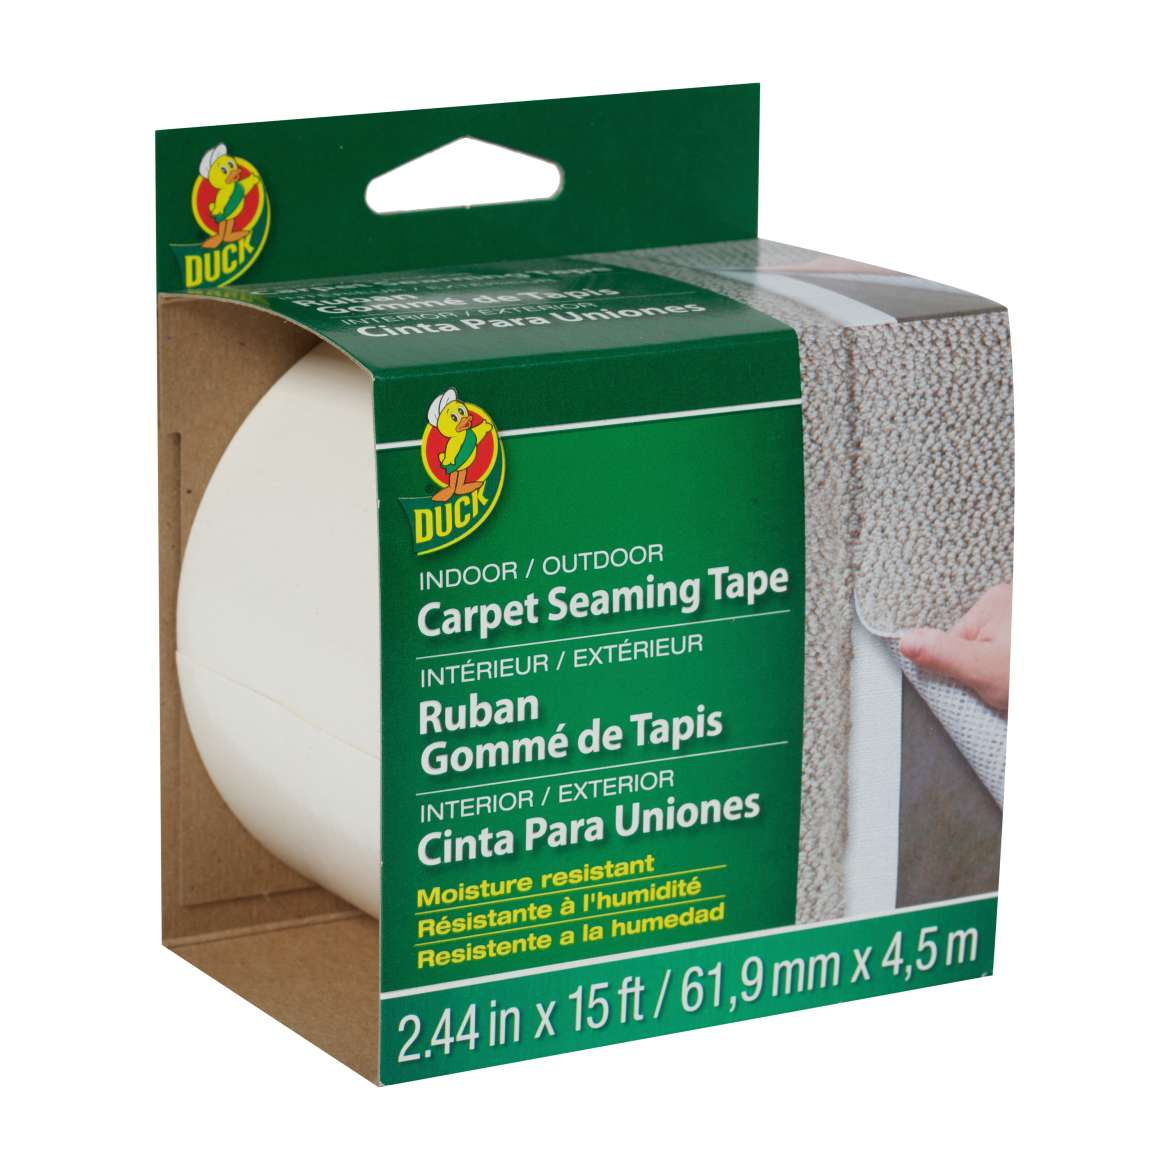 Duck® Brand Indoor/Outdoor Carpet Steaming Tape - White, 2.44 in. x 15 ft. Image